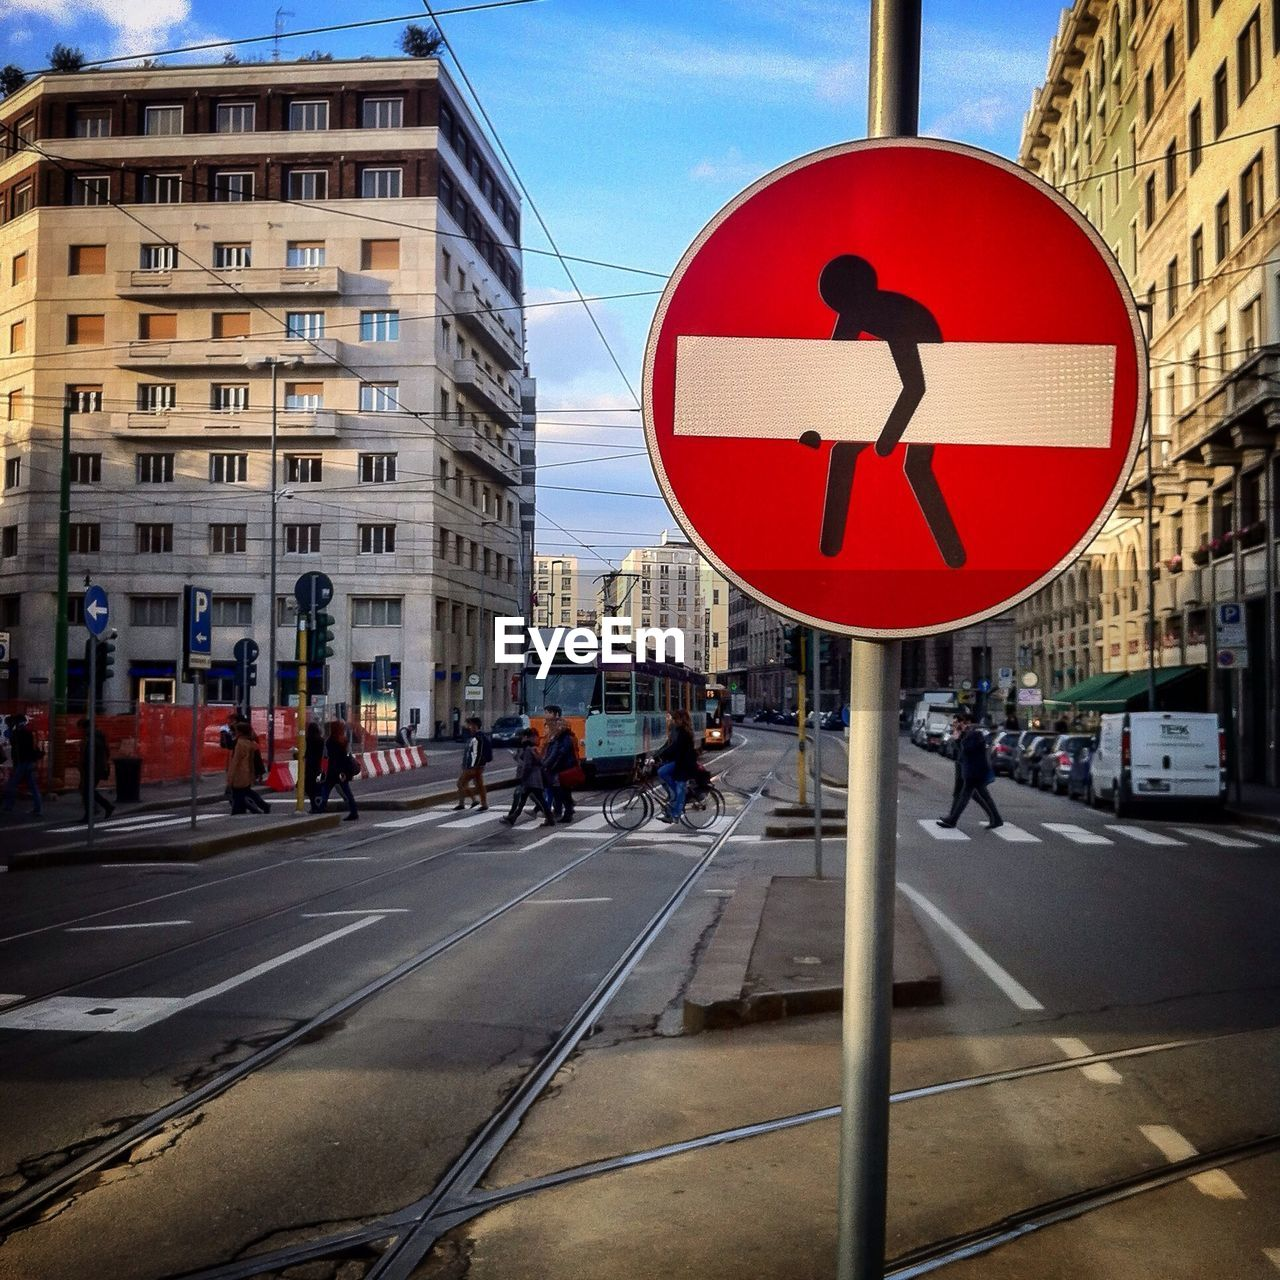 ROAD SIGNS IN CITY